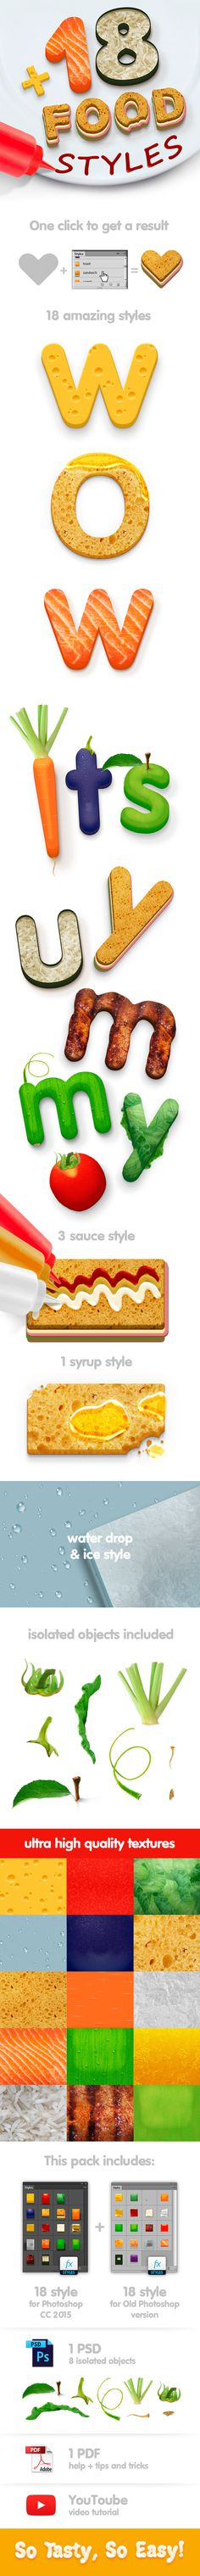 18 Food Photoshop Styles